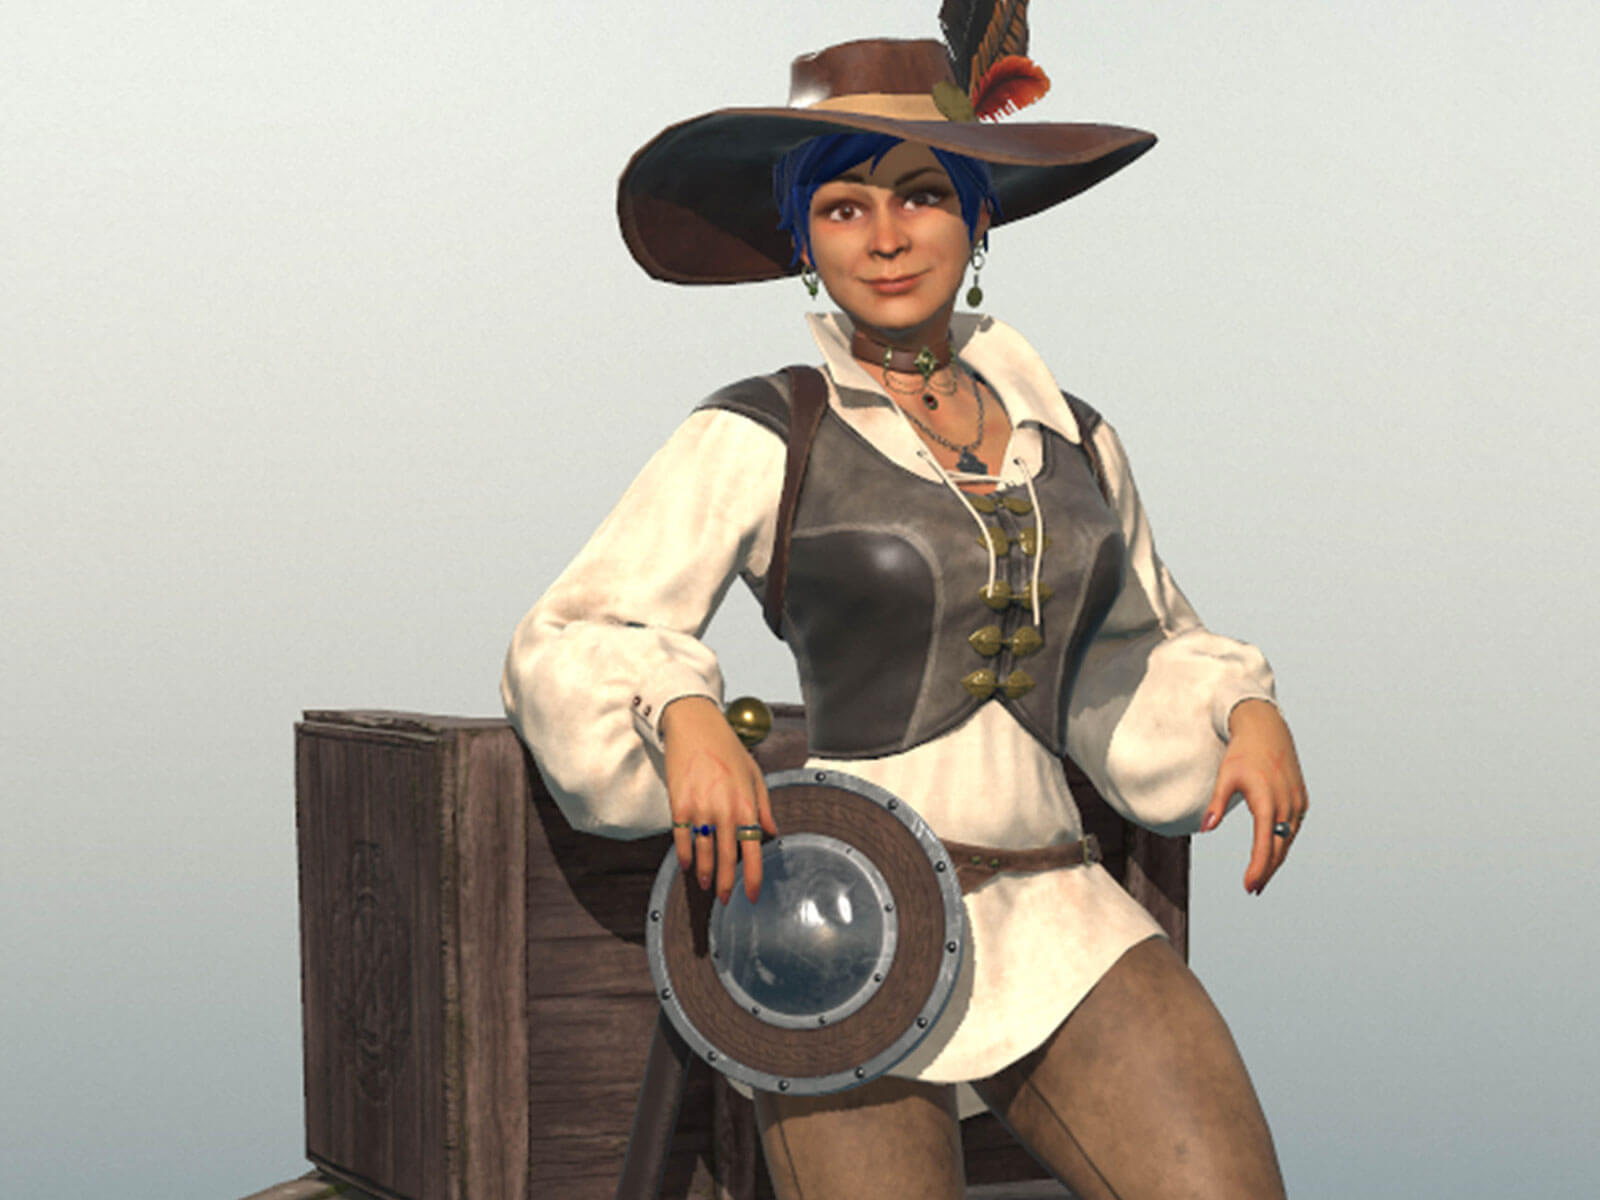 A woman in a plumed hat and cavalier garb leans against wooden crates with a buckler and saber at her hip.